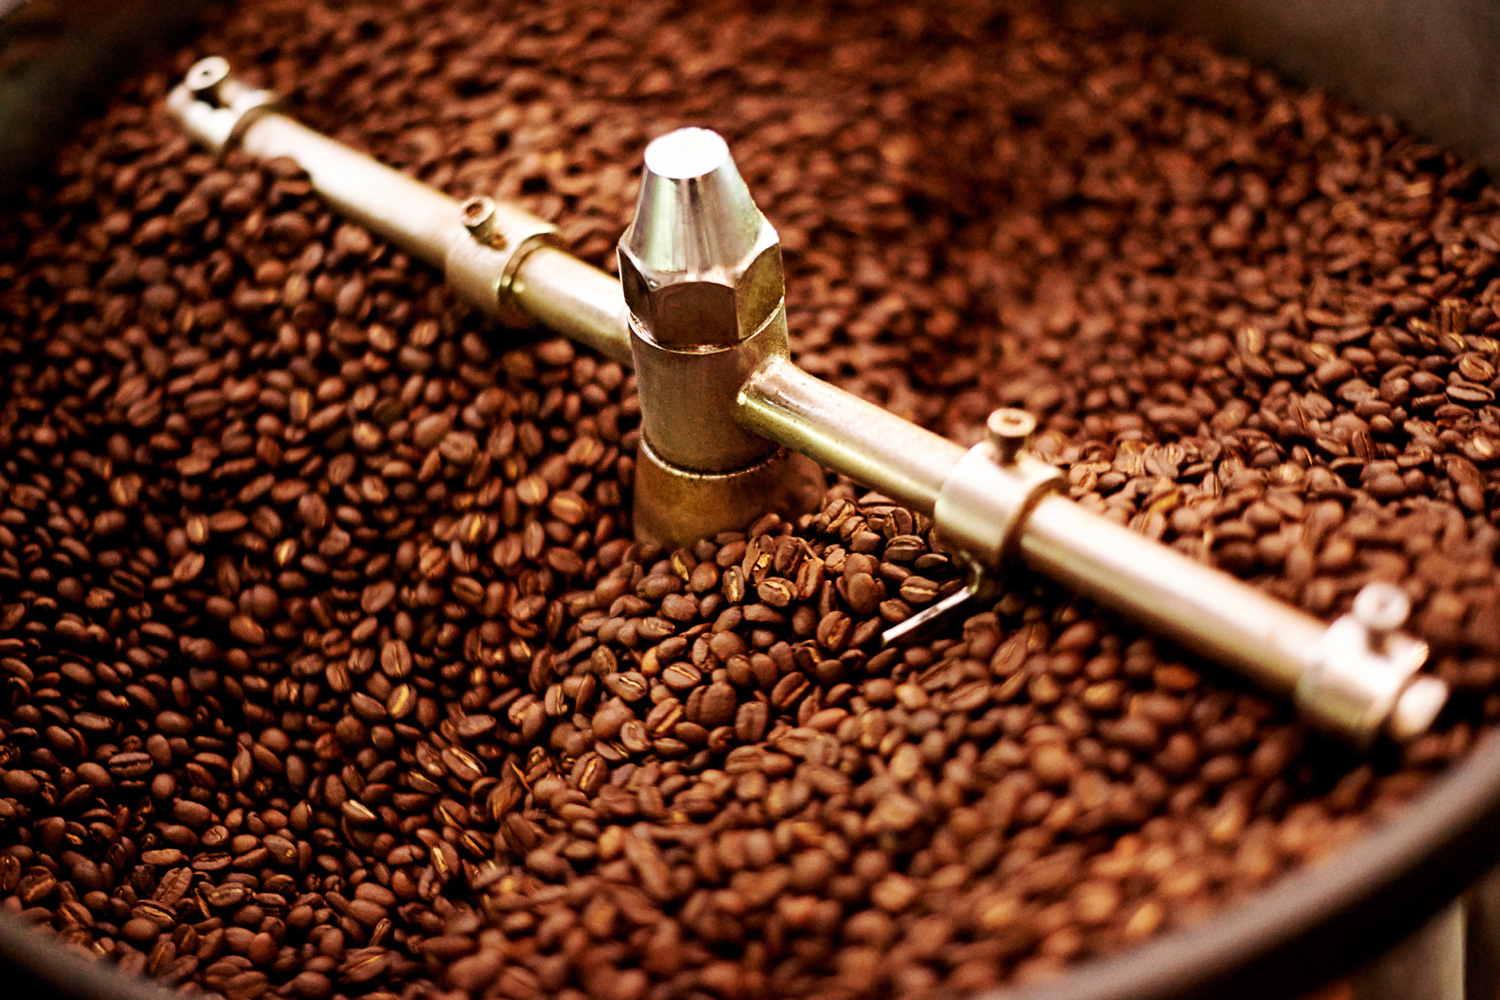 red-bean-coffee-production-05.jpg